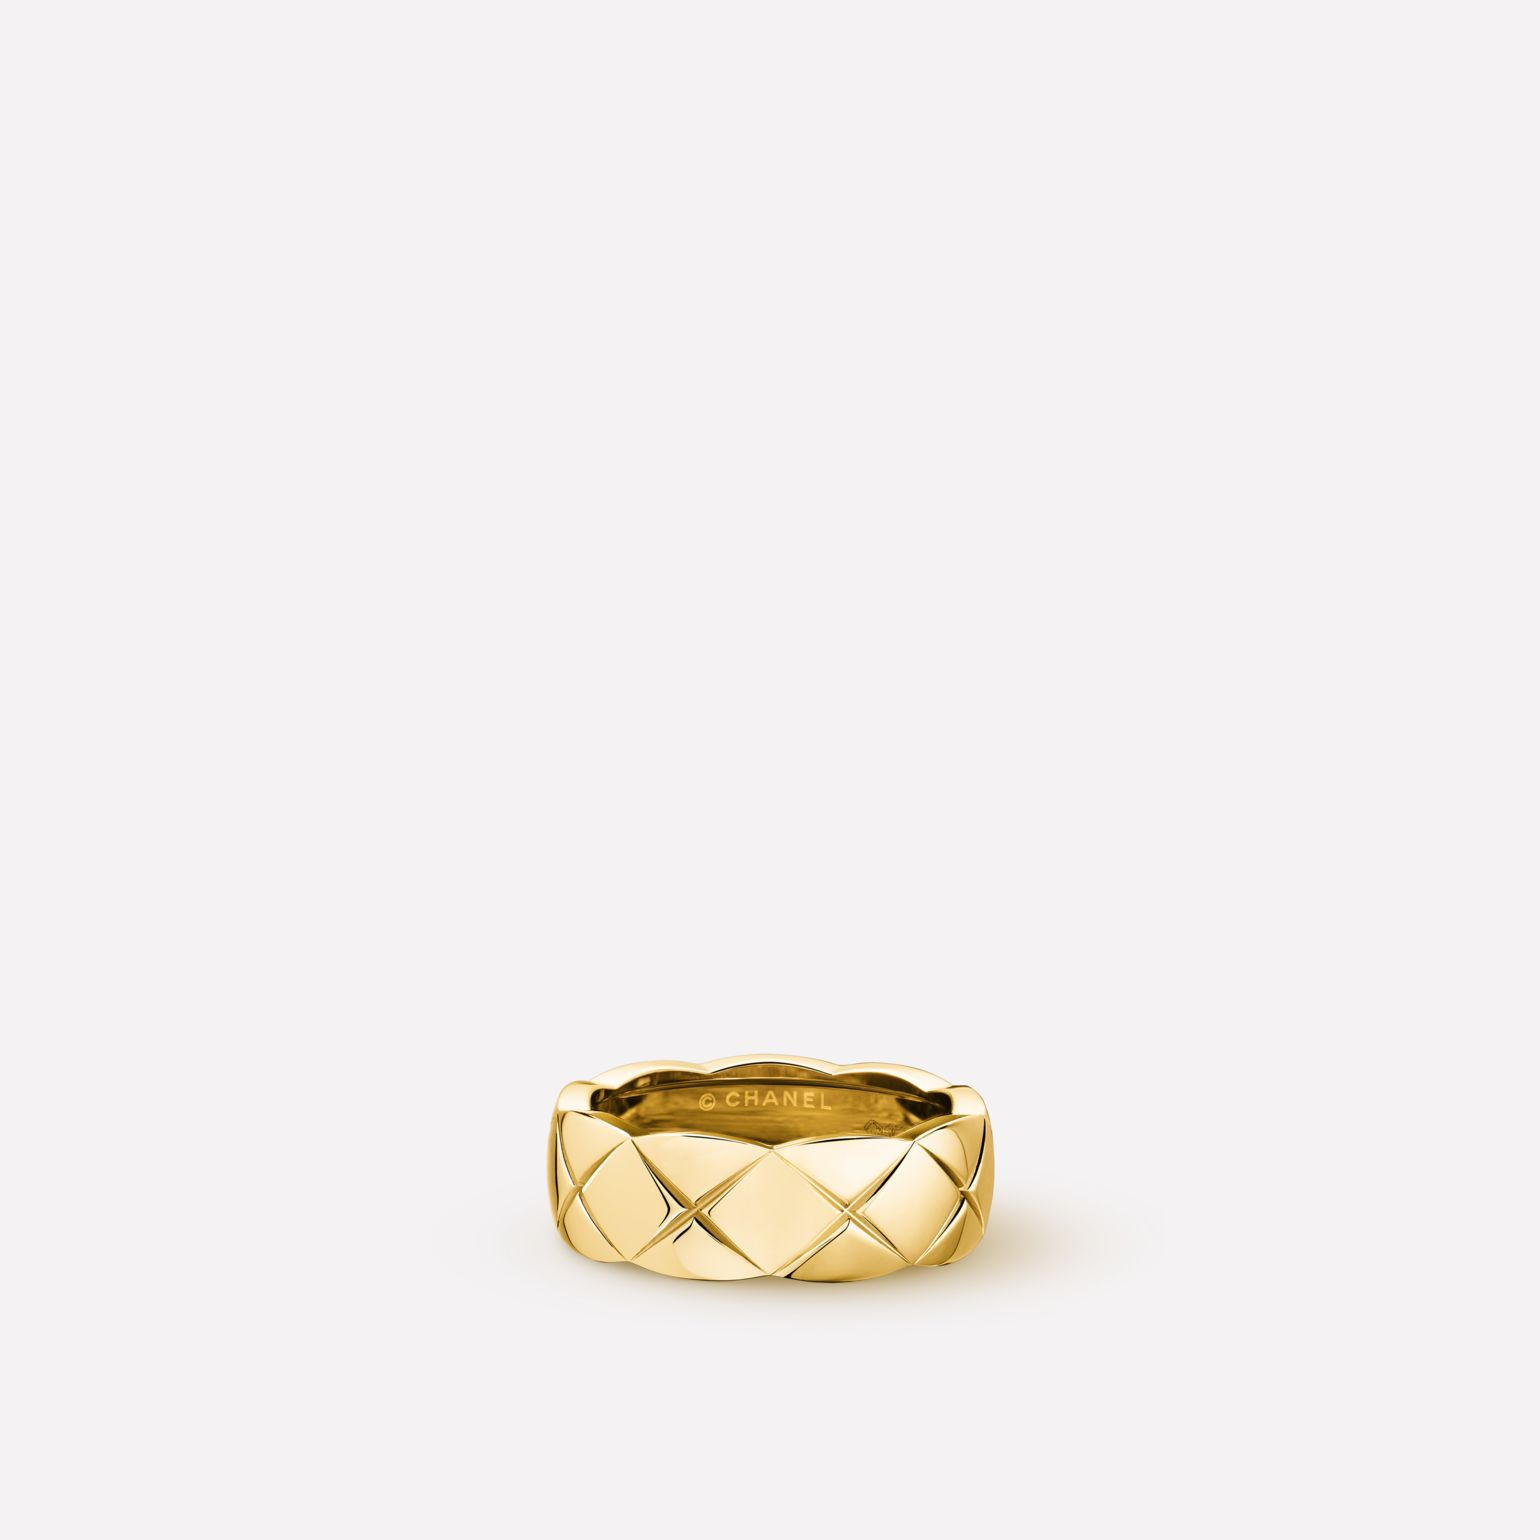 Coco Crush ring Quilted motif ring, small version, in 18K yellow gold